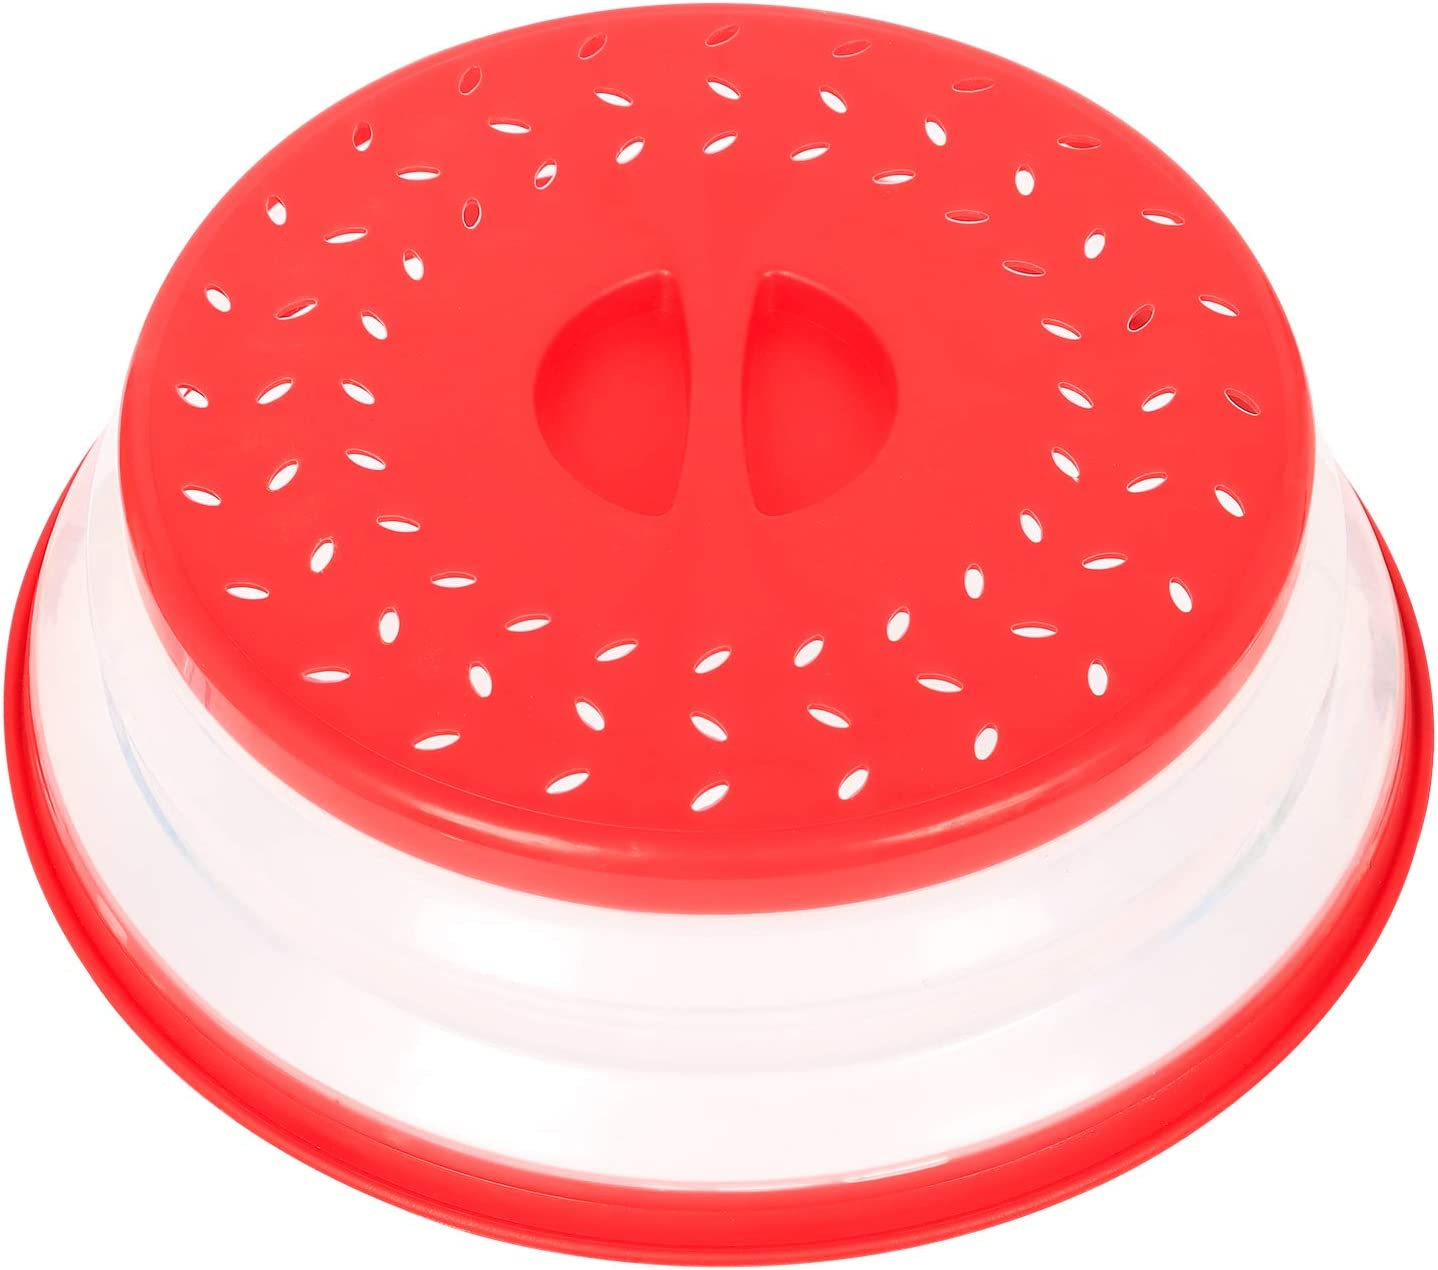 Emoly Collapsible Microwave Cover, Easy Grip Food Splatter Cover Colander Strainer Splatter for Fruit Vegetables, Bap Free and Non-Toxic - Red